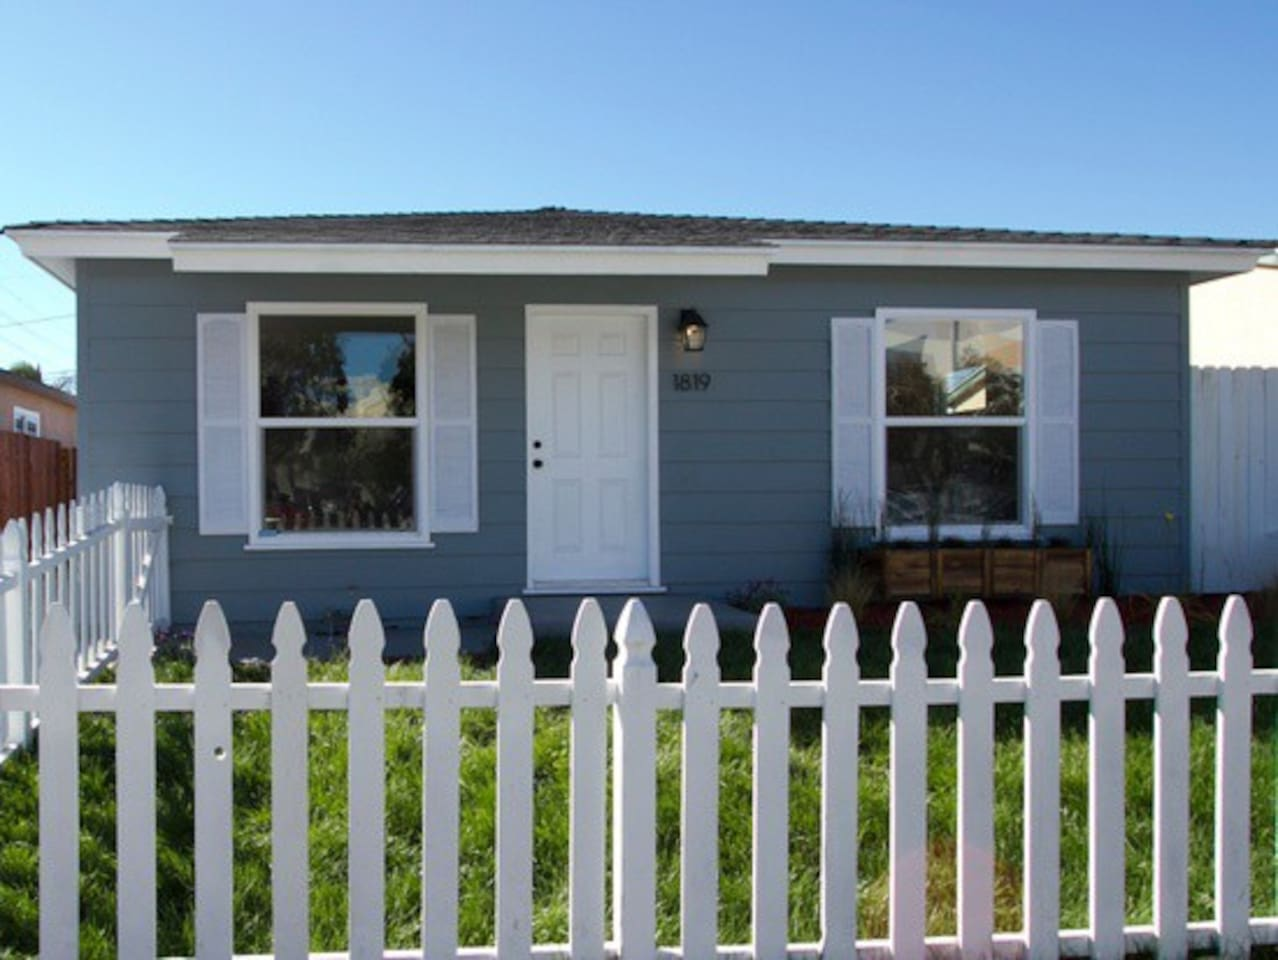 White picket fence in front